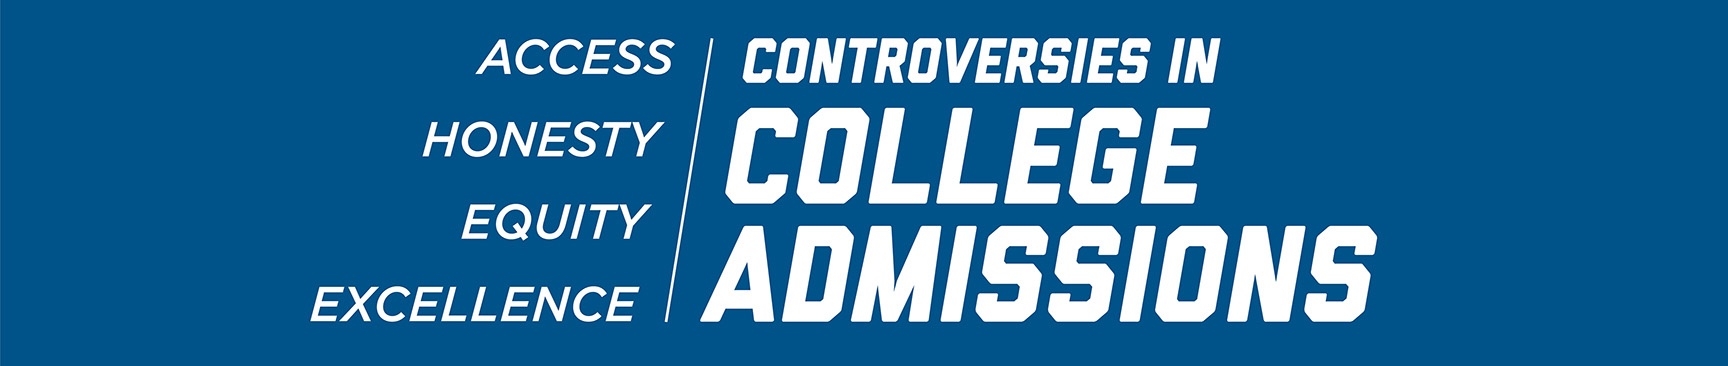 Controversies in College Admissions logo